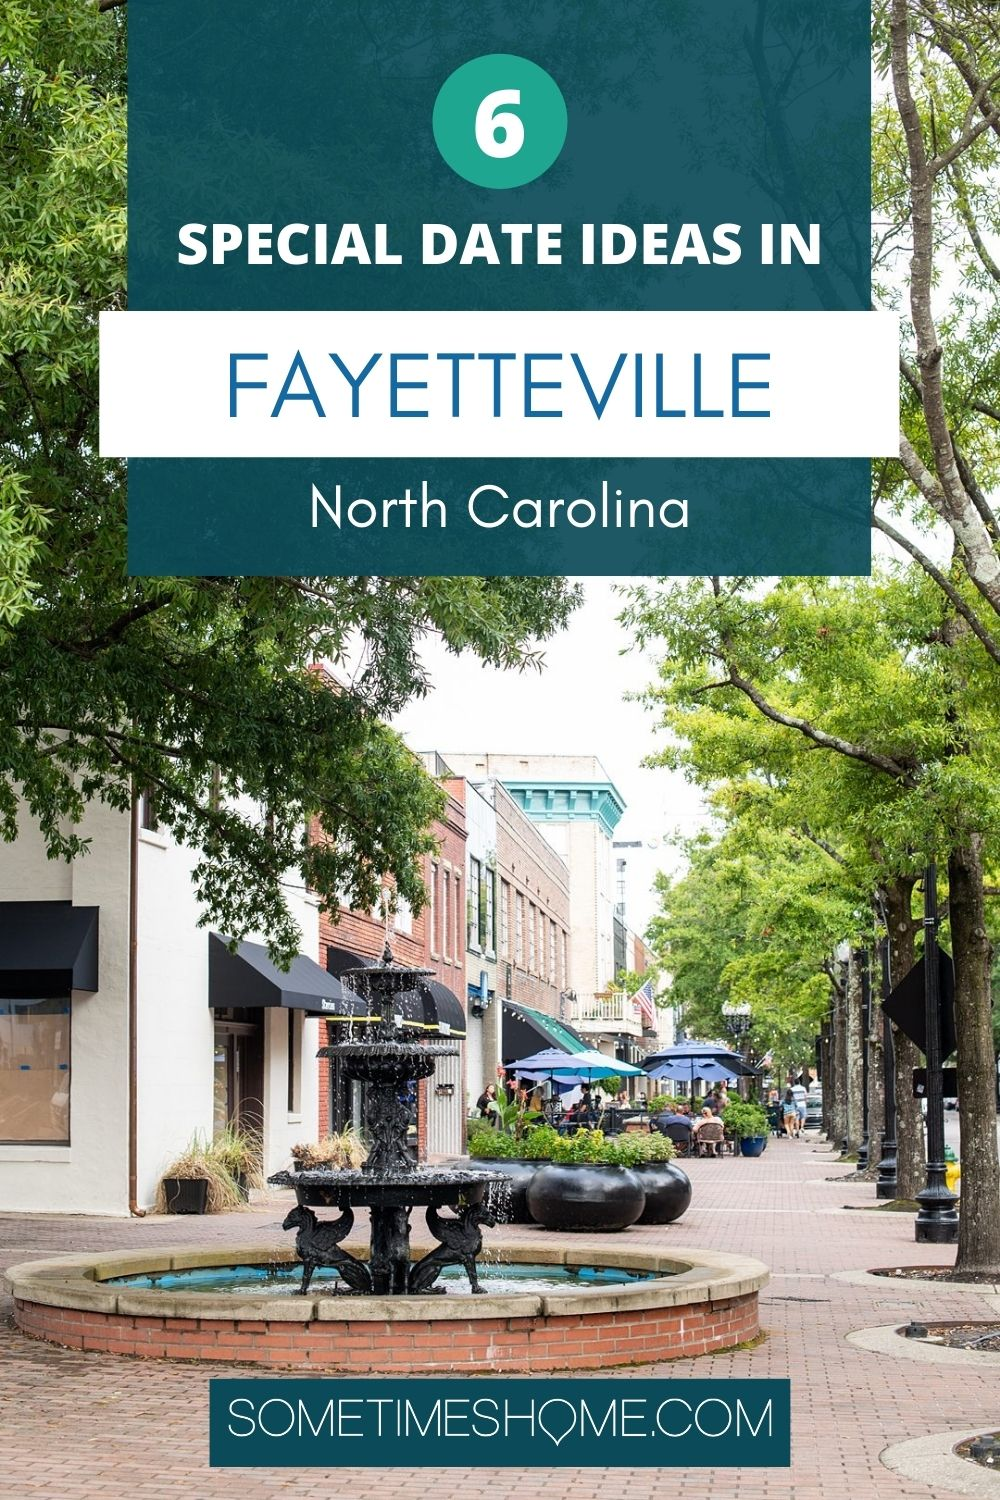 Pinterest image for 6 special date ideas in Fayetteville, North Carolina.